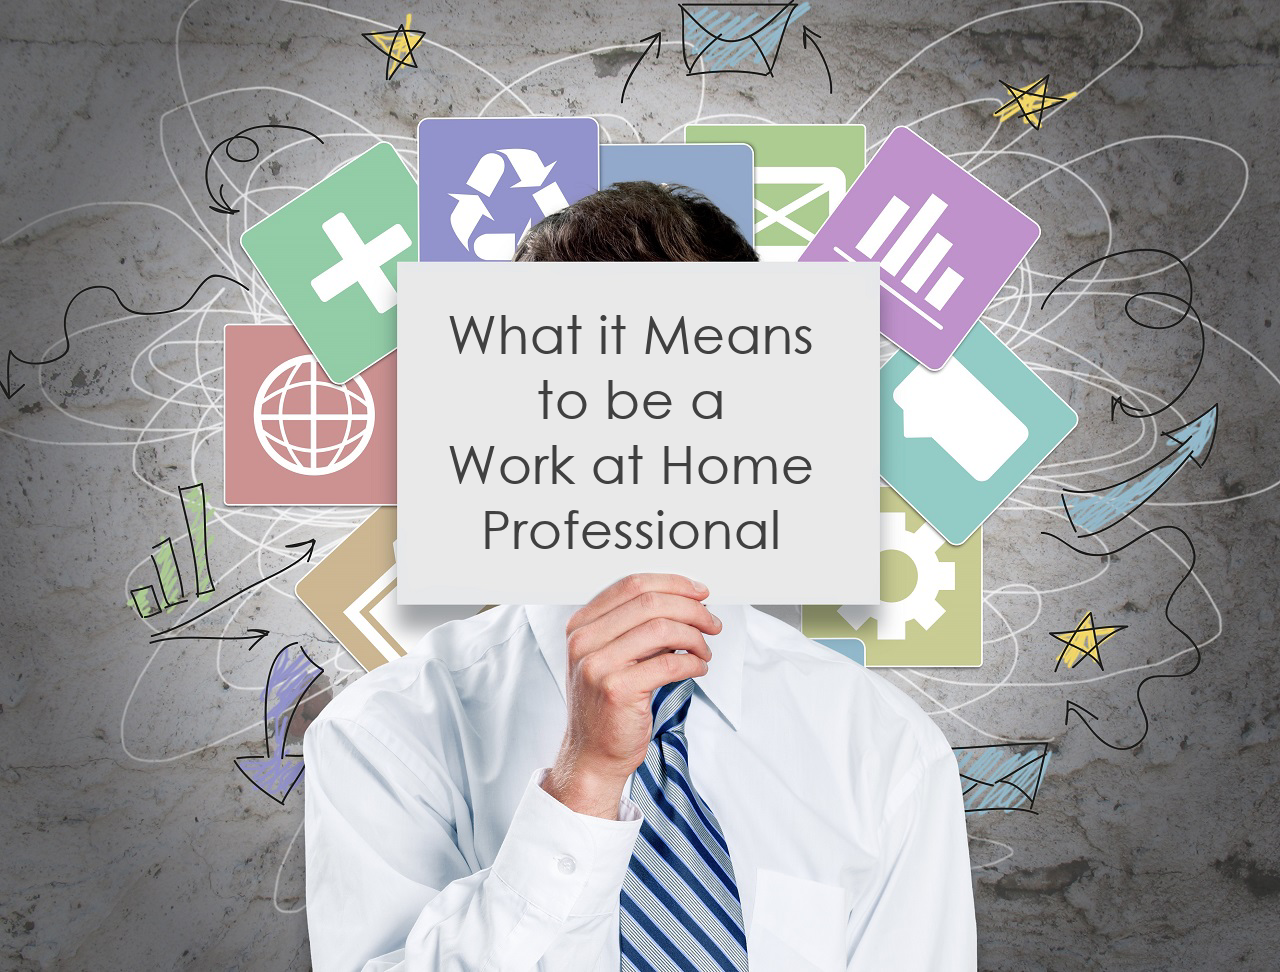 What it Means to be a Work at Home Professional